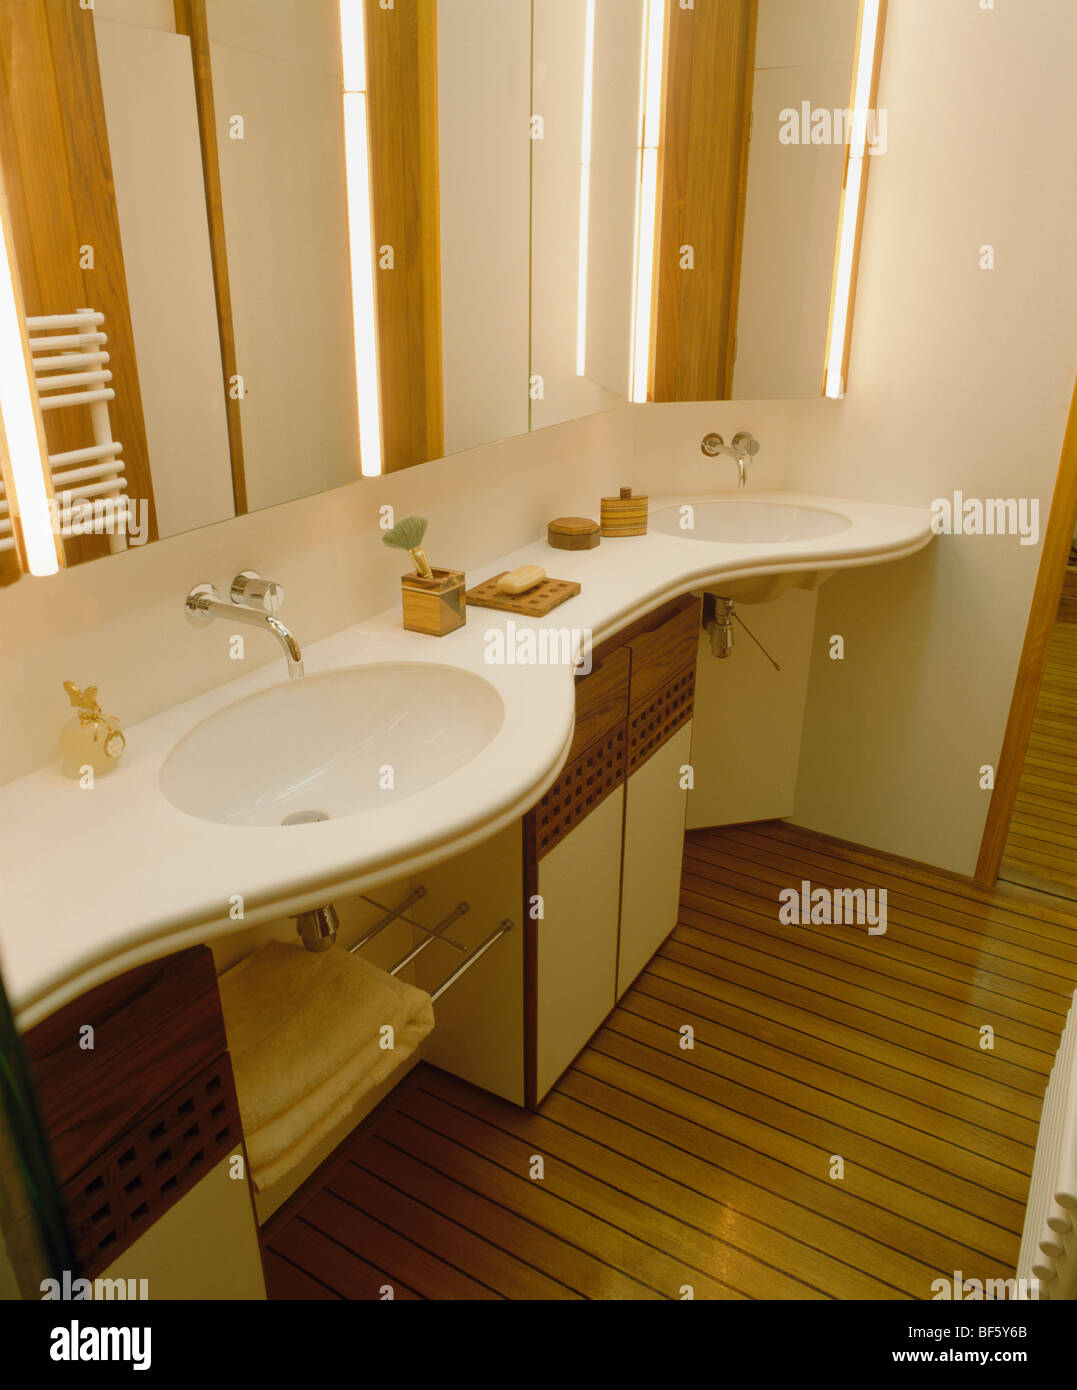 Strip lighting on mirror above basin in curved cream vanity unit ...